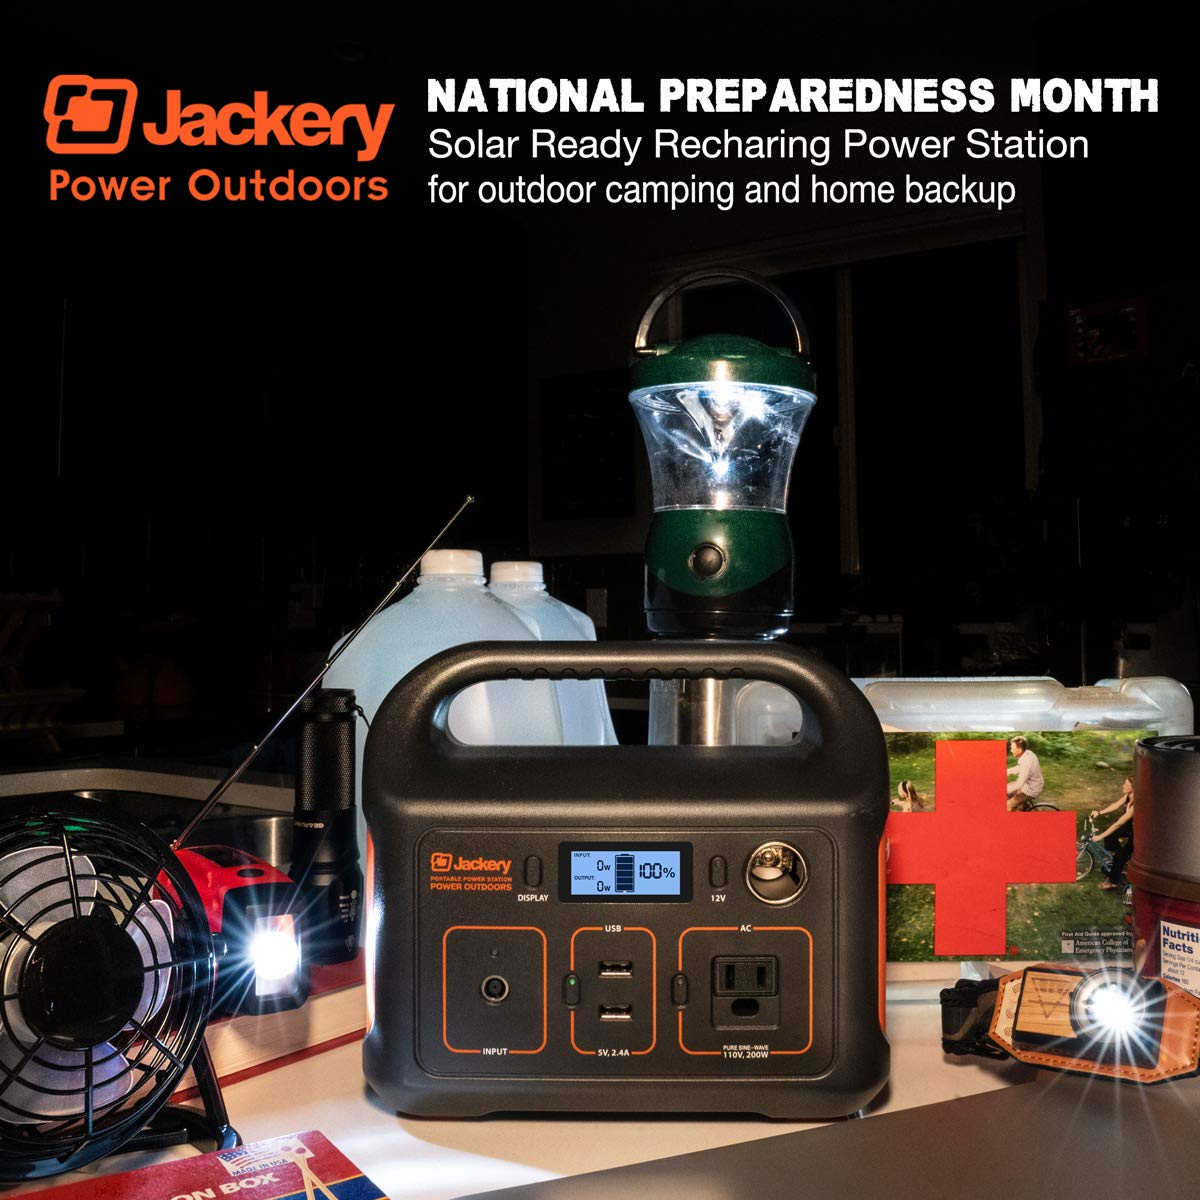 Jackery Portable Power Station Explorer 240, 240Wh Emergency Backup Lithium Battery, 110V 200W Pure Sinewave AC Outlet, Solar Generator for Outdoors Camping Travel Fishing Hunting